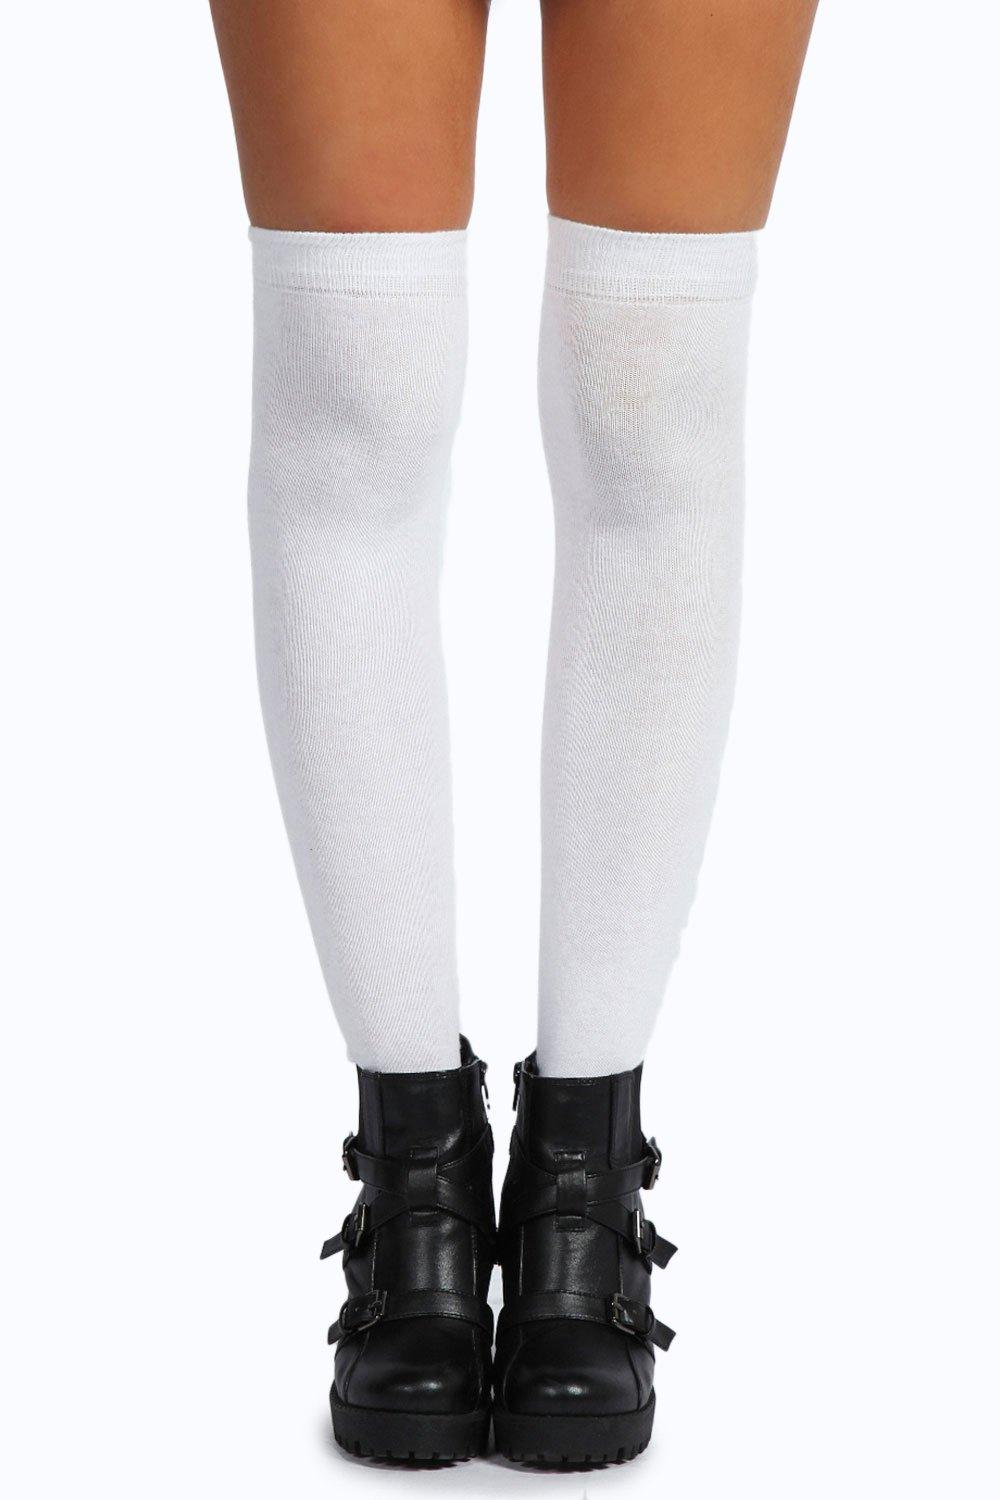 Knee High Socks white